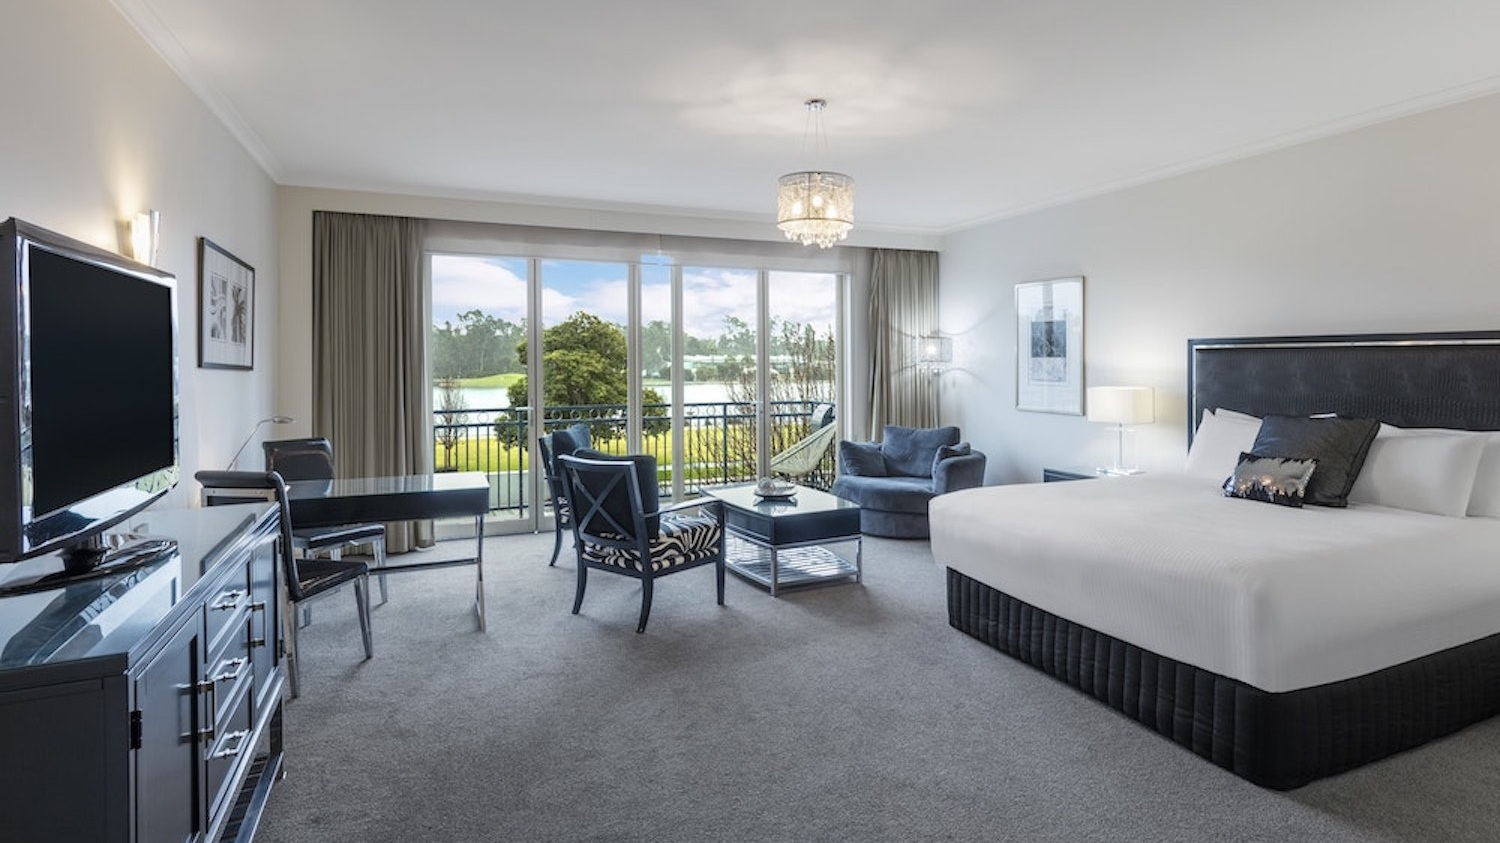 Executive Suite - 1 x KING BED • MAX 2 GUESTSA spacious, elegant suite with sweeping views across to Victoria Park Lake.